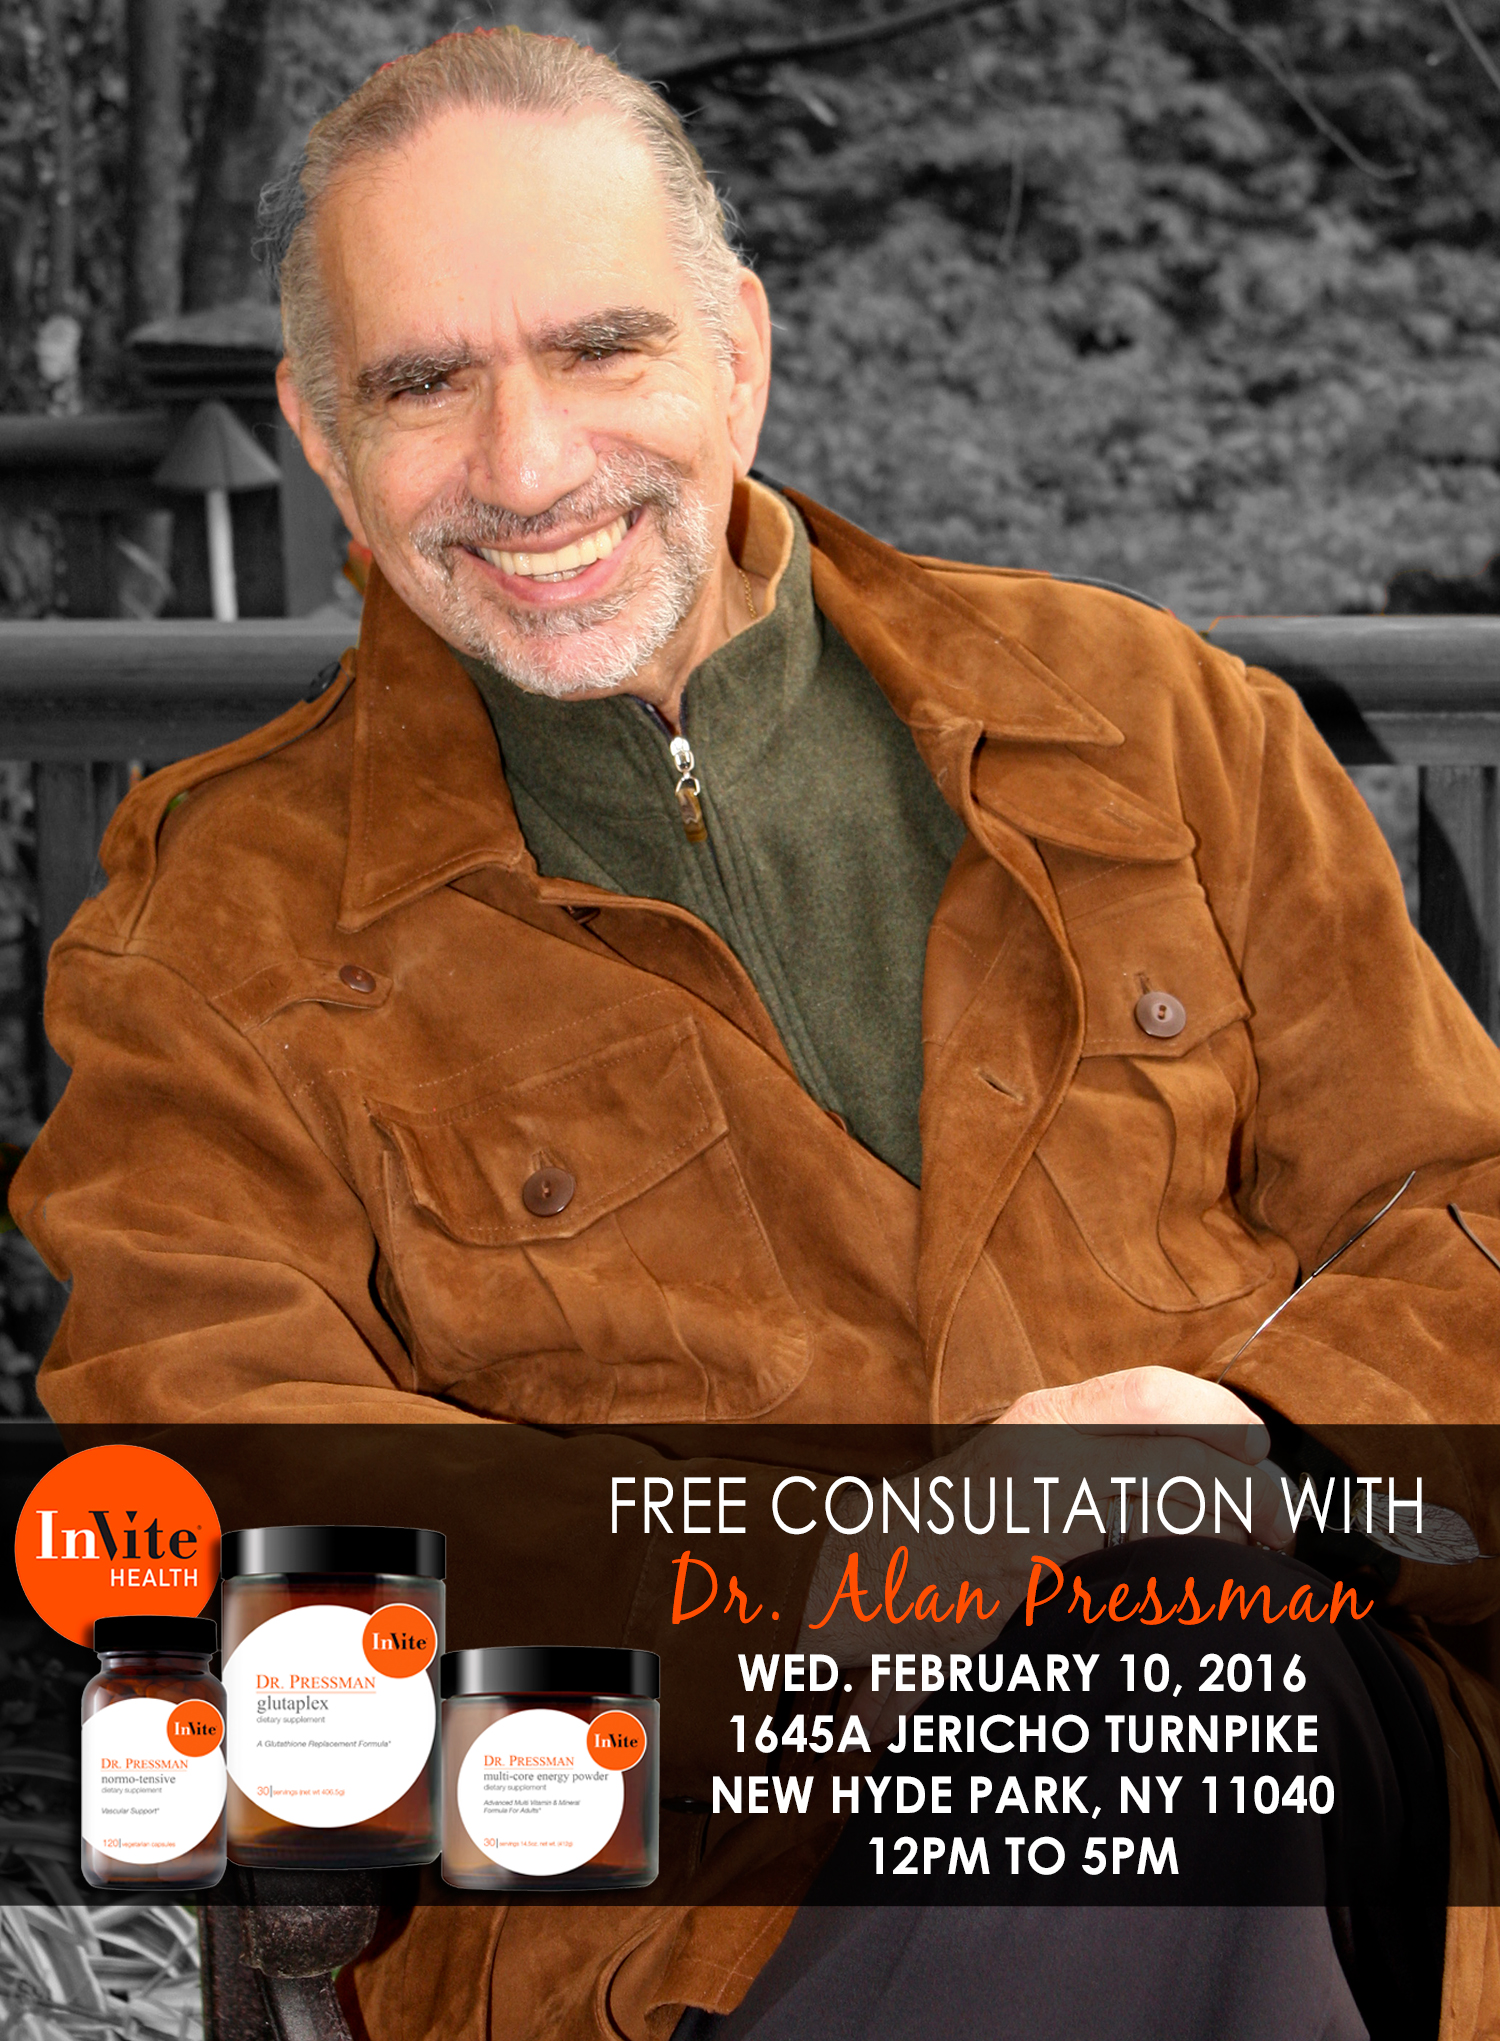 Meet Dr. Alan Pressman in New Hyde Park!